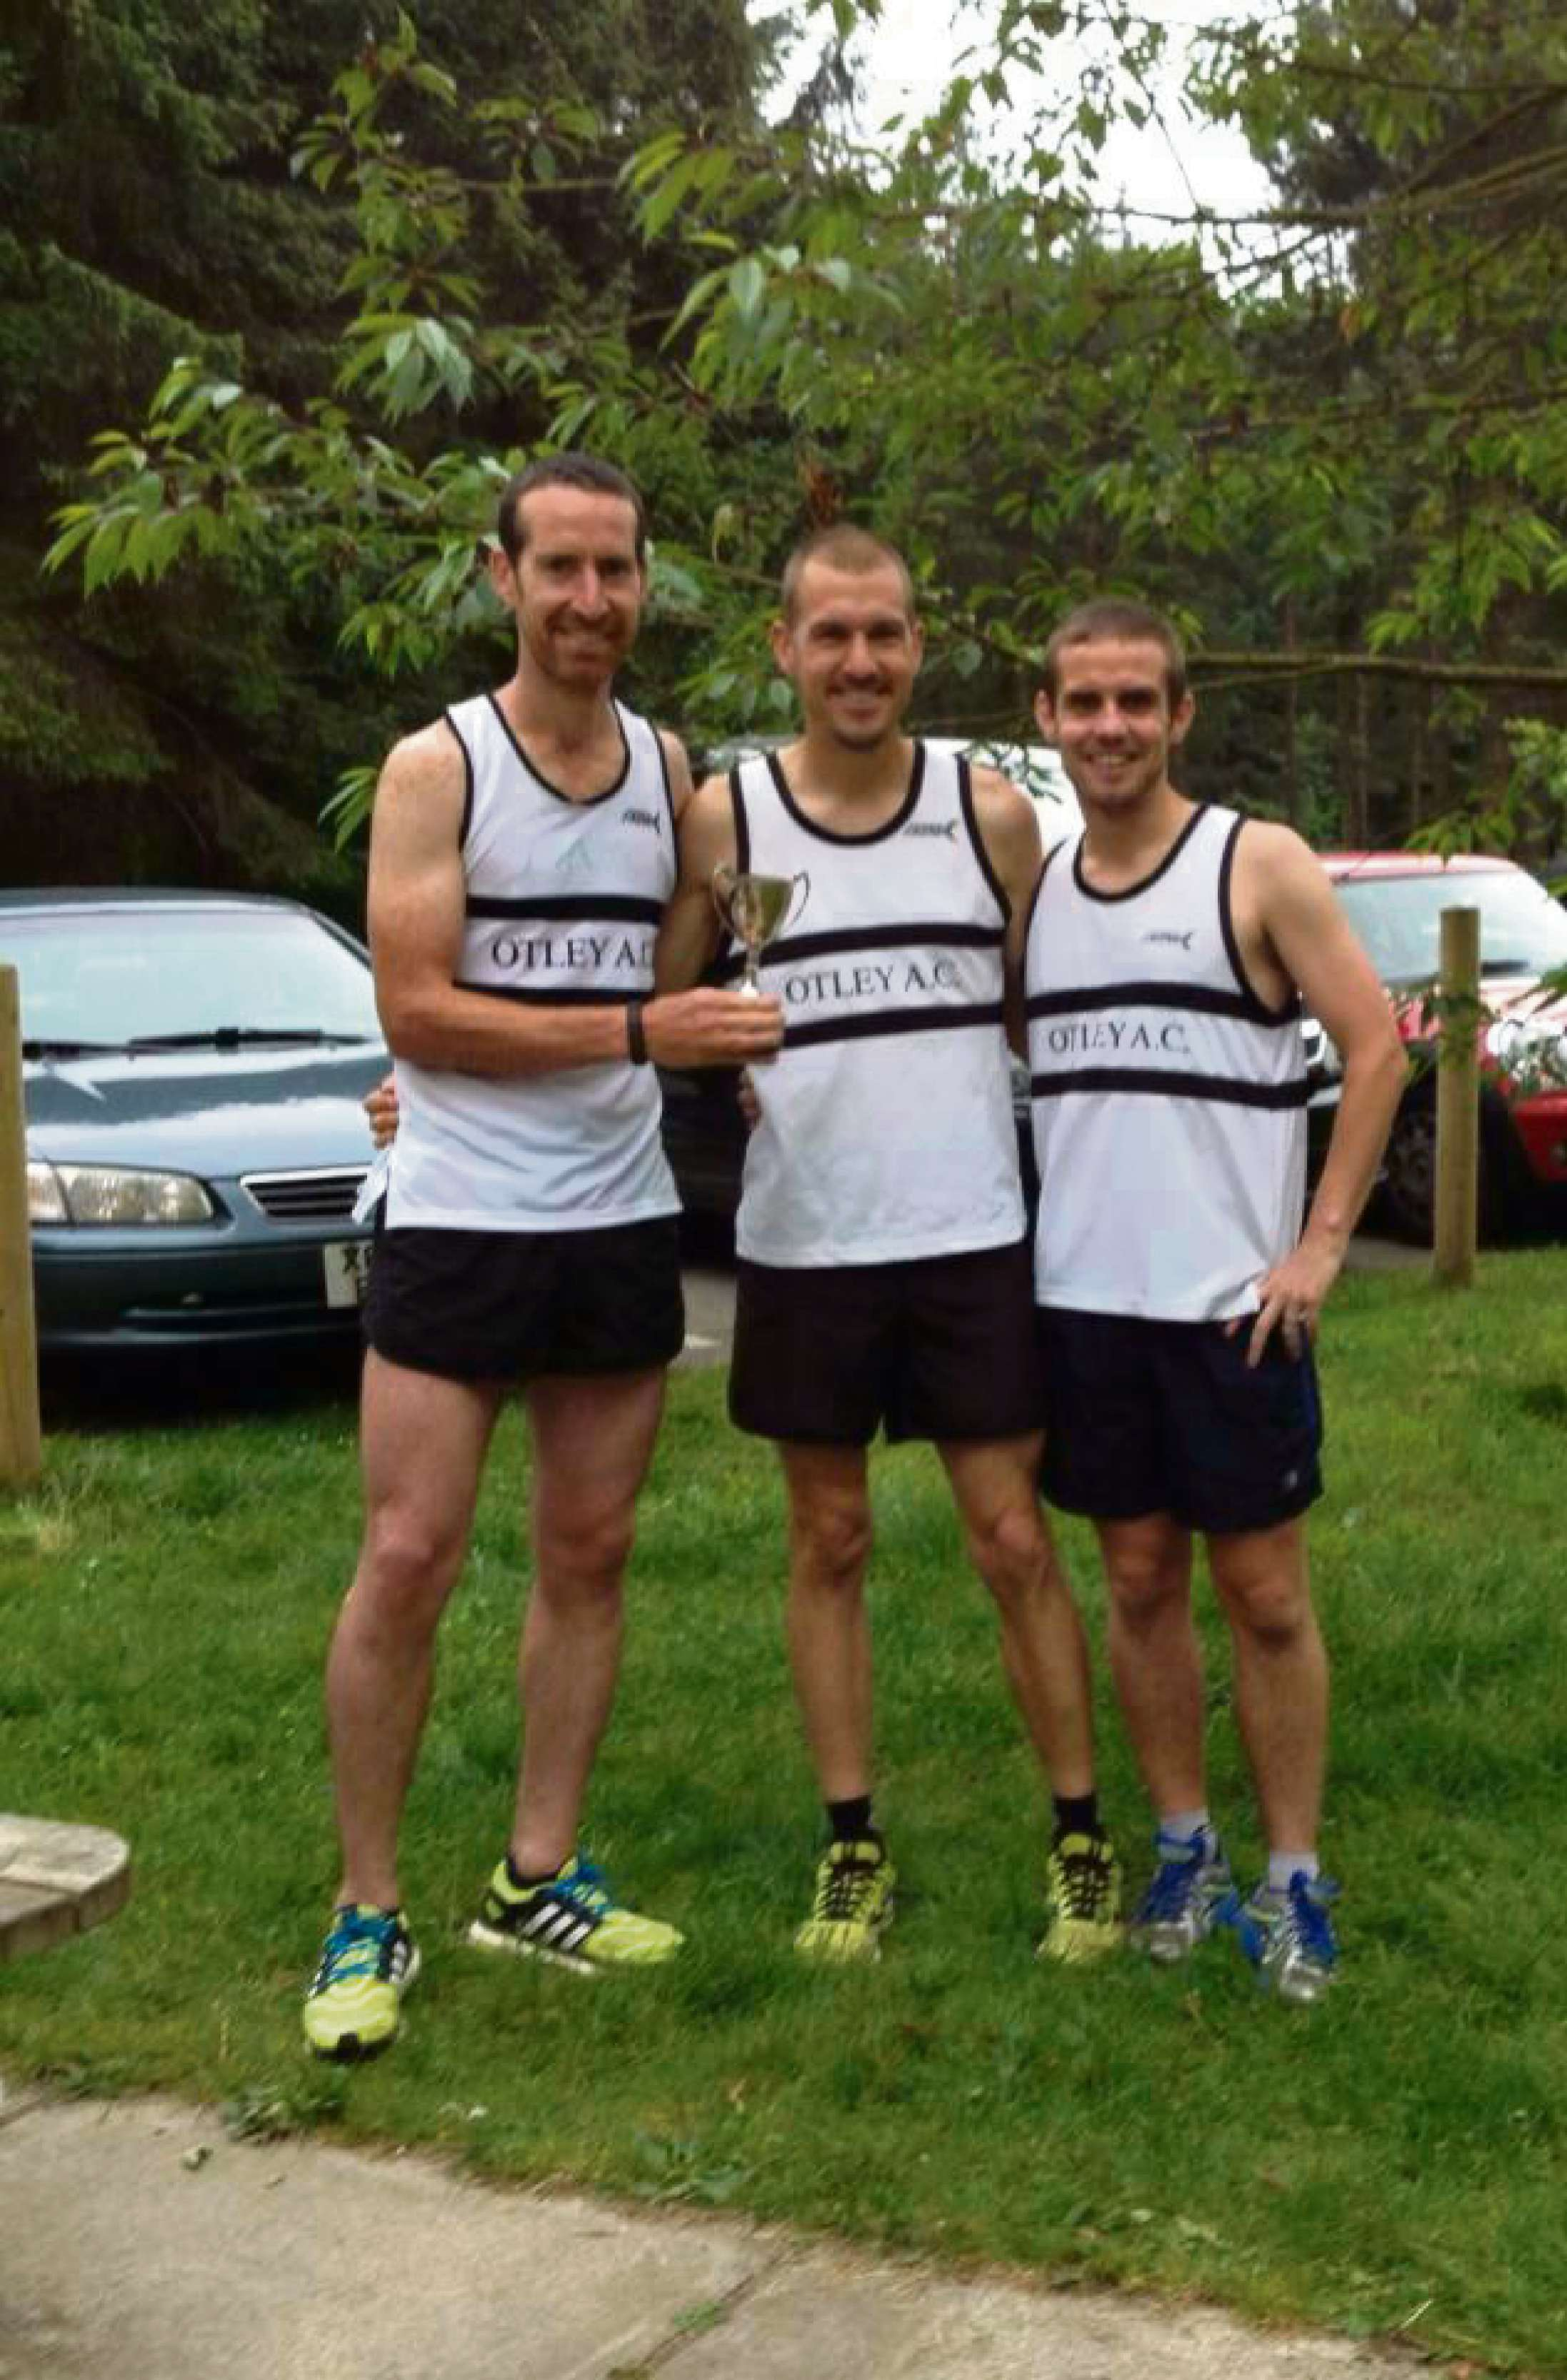 Otley's A team, who won the team prize at the Washburn Valley Relay. From left: Liam Dunne, Scott Harrington and Tom Midgley